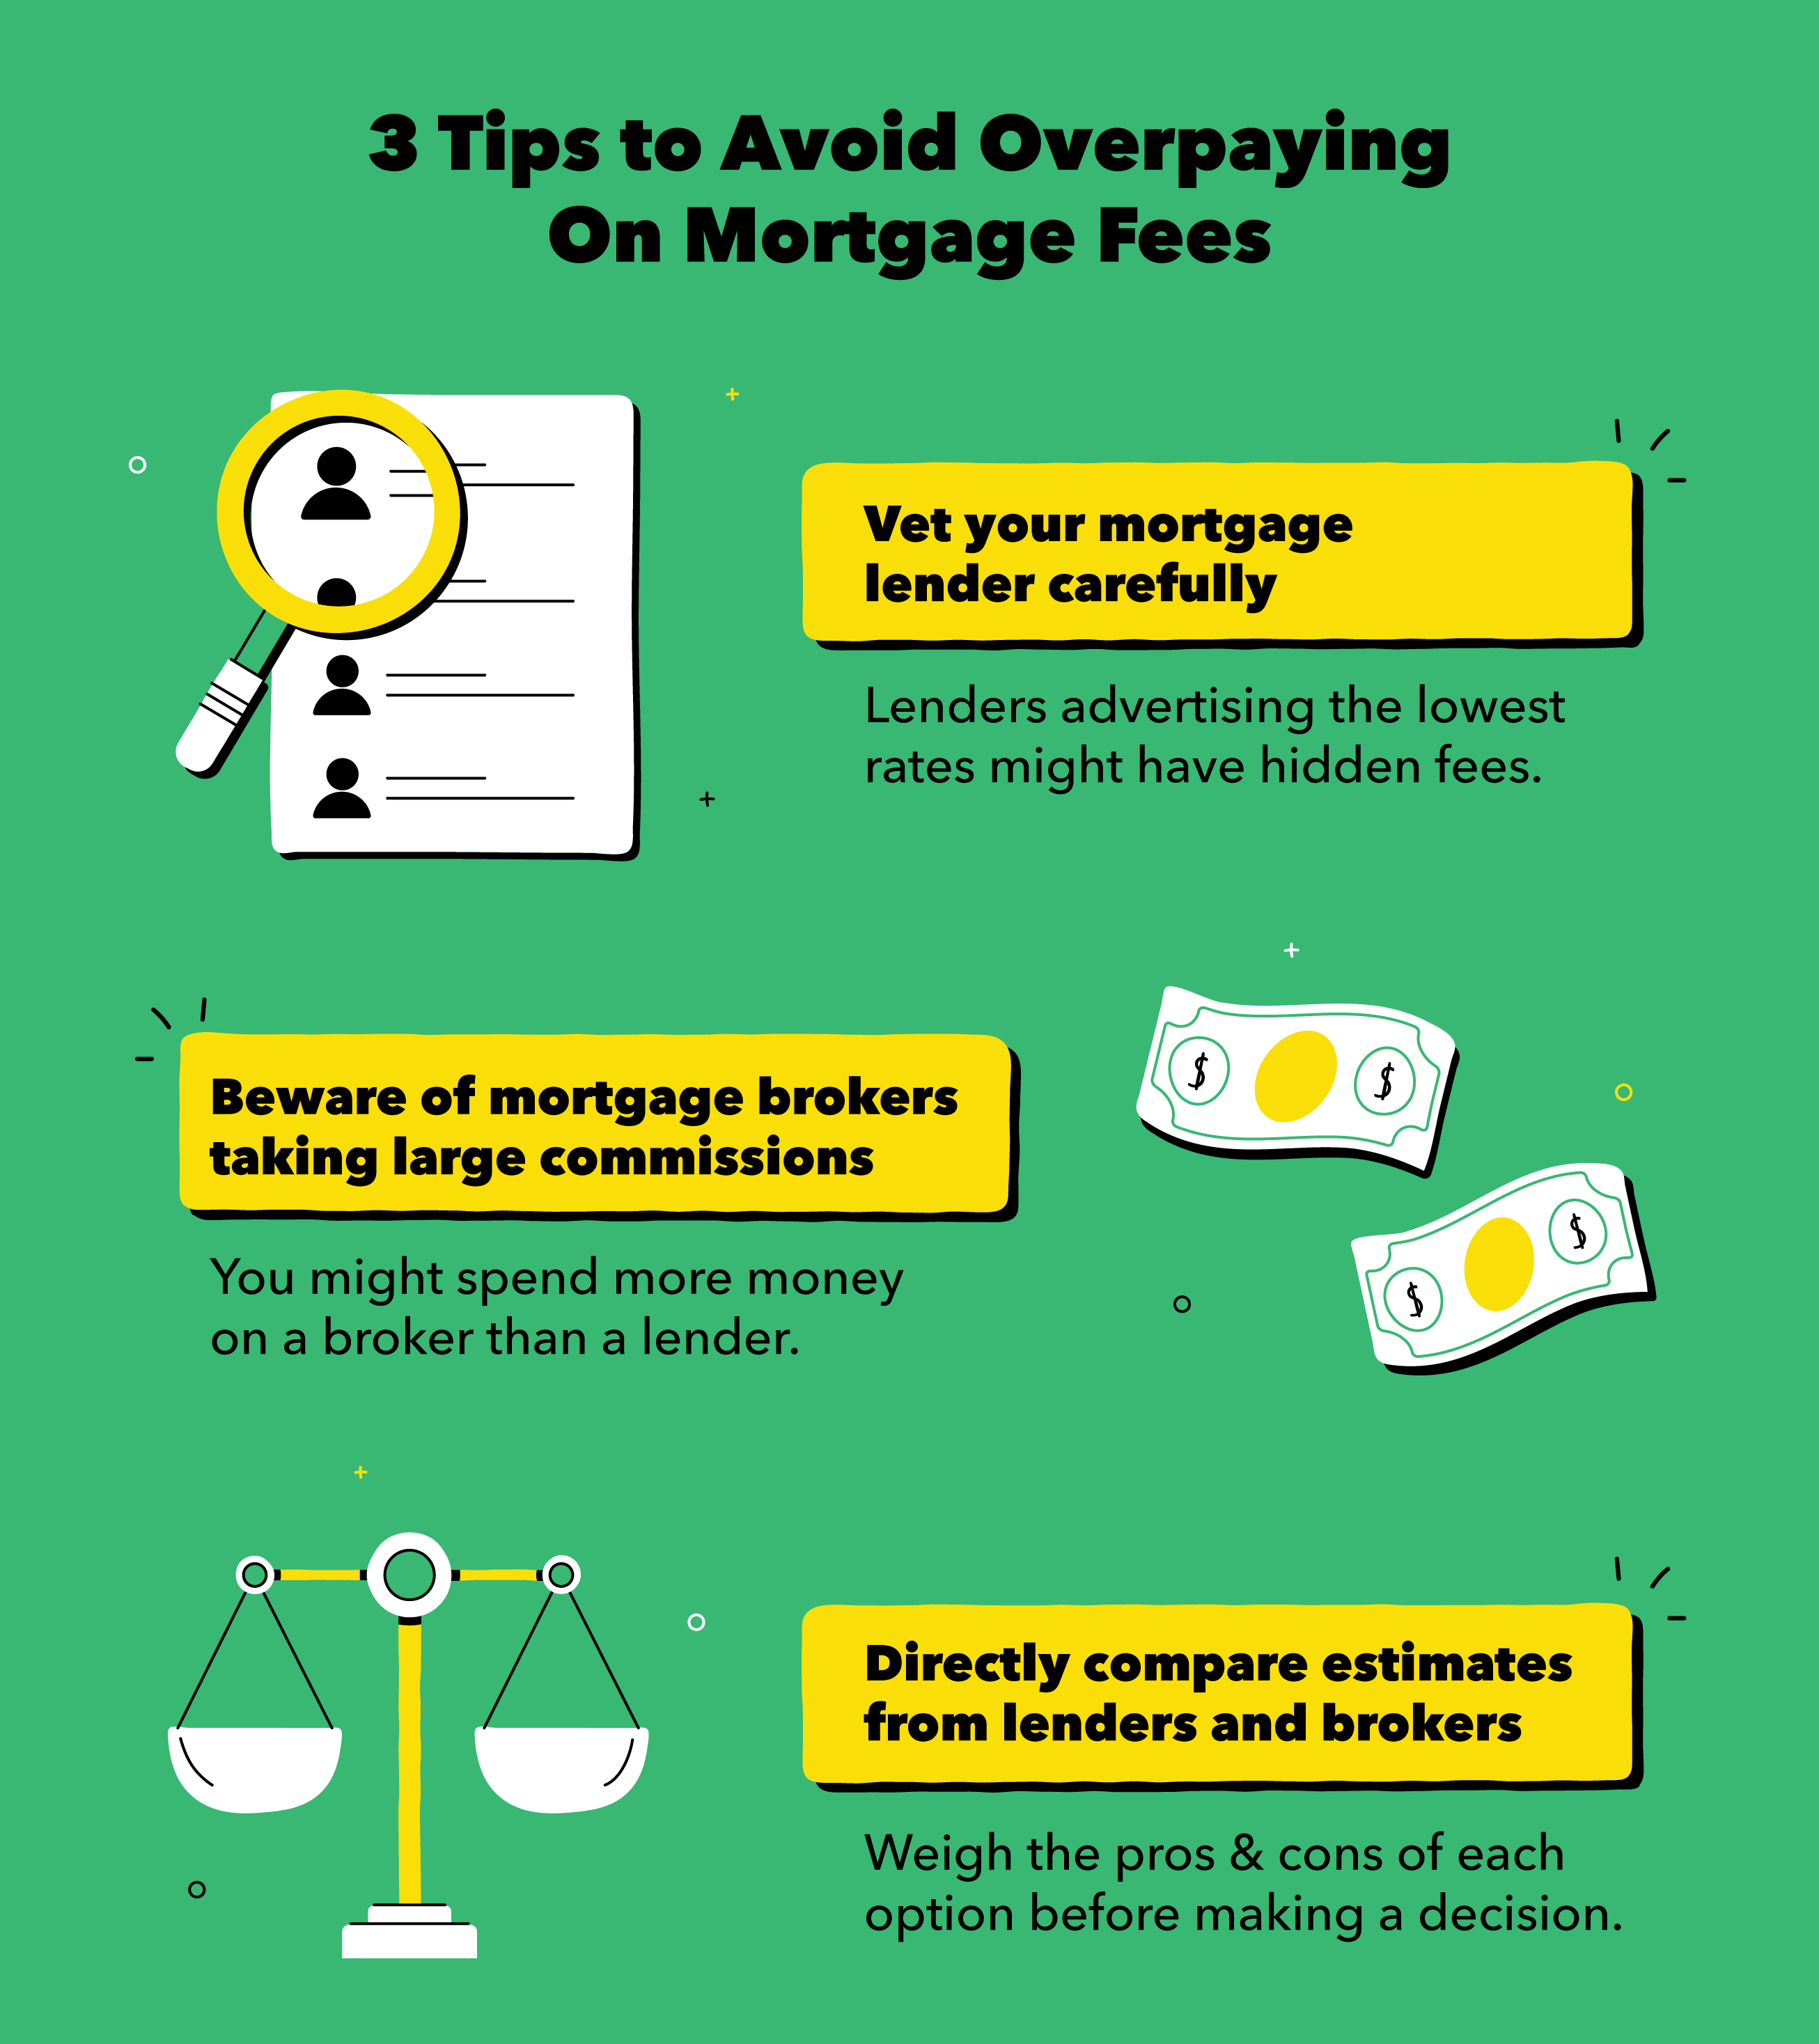 tips to avoid overpaying on mortgage fees